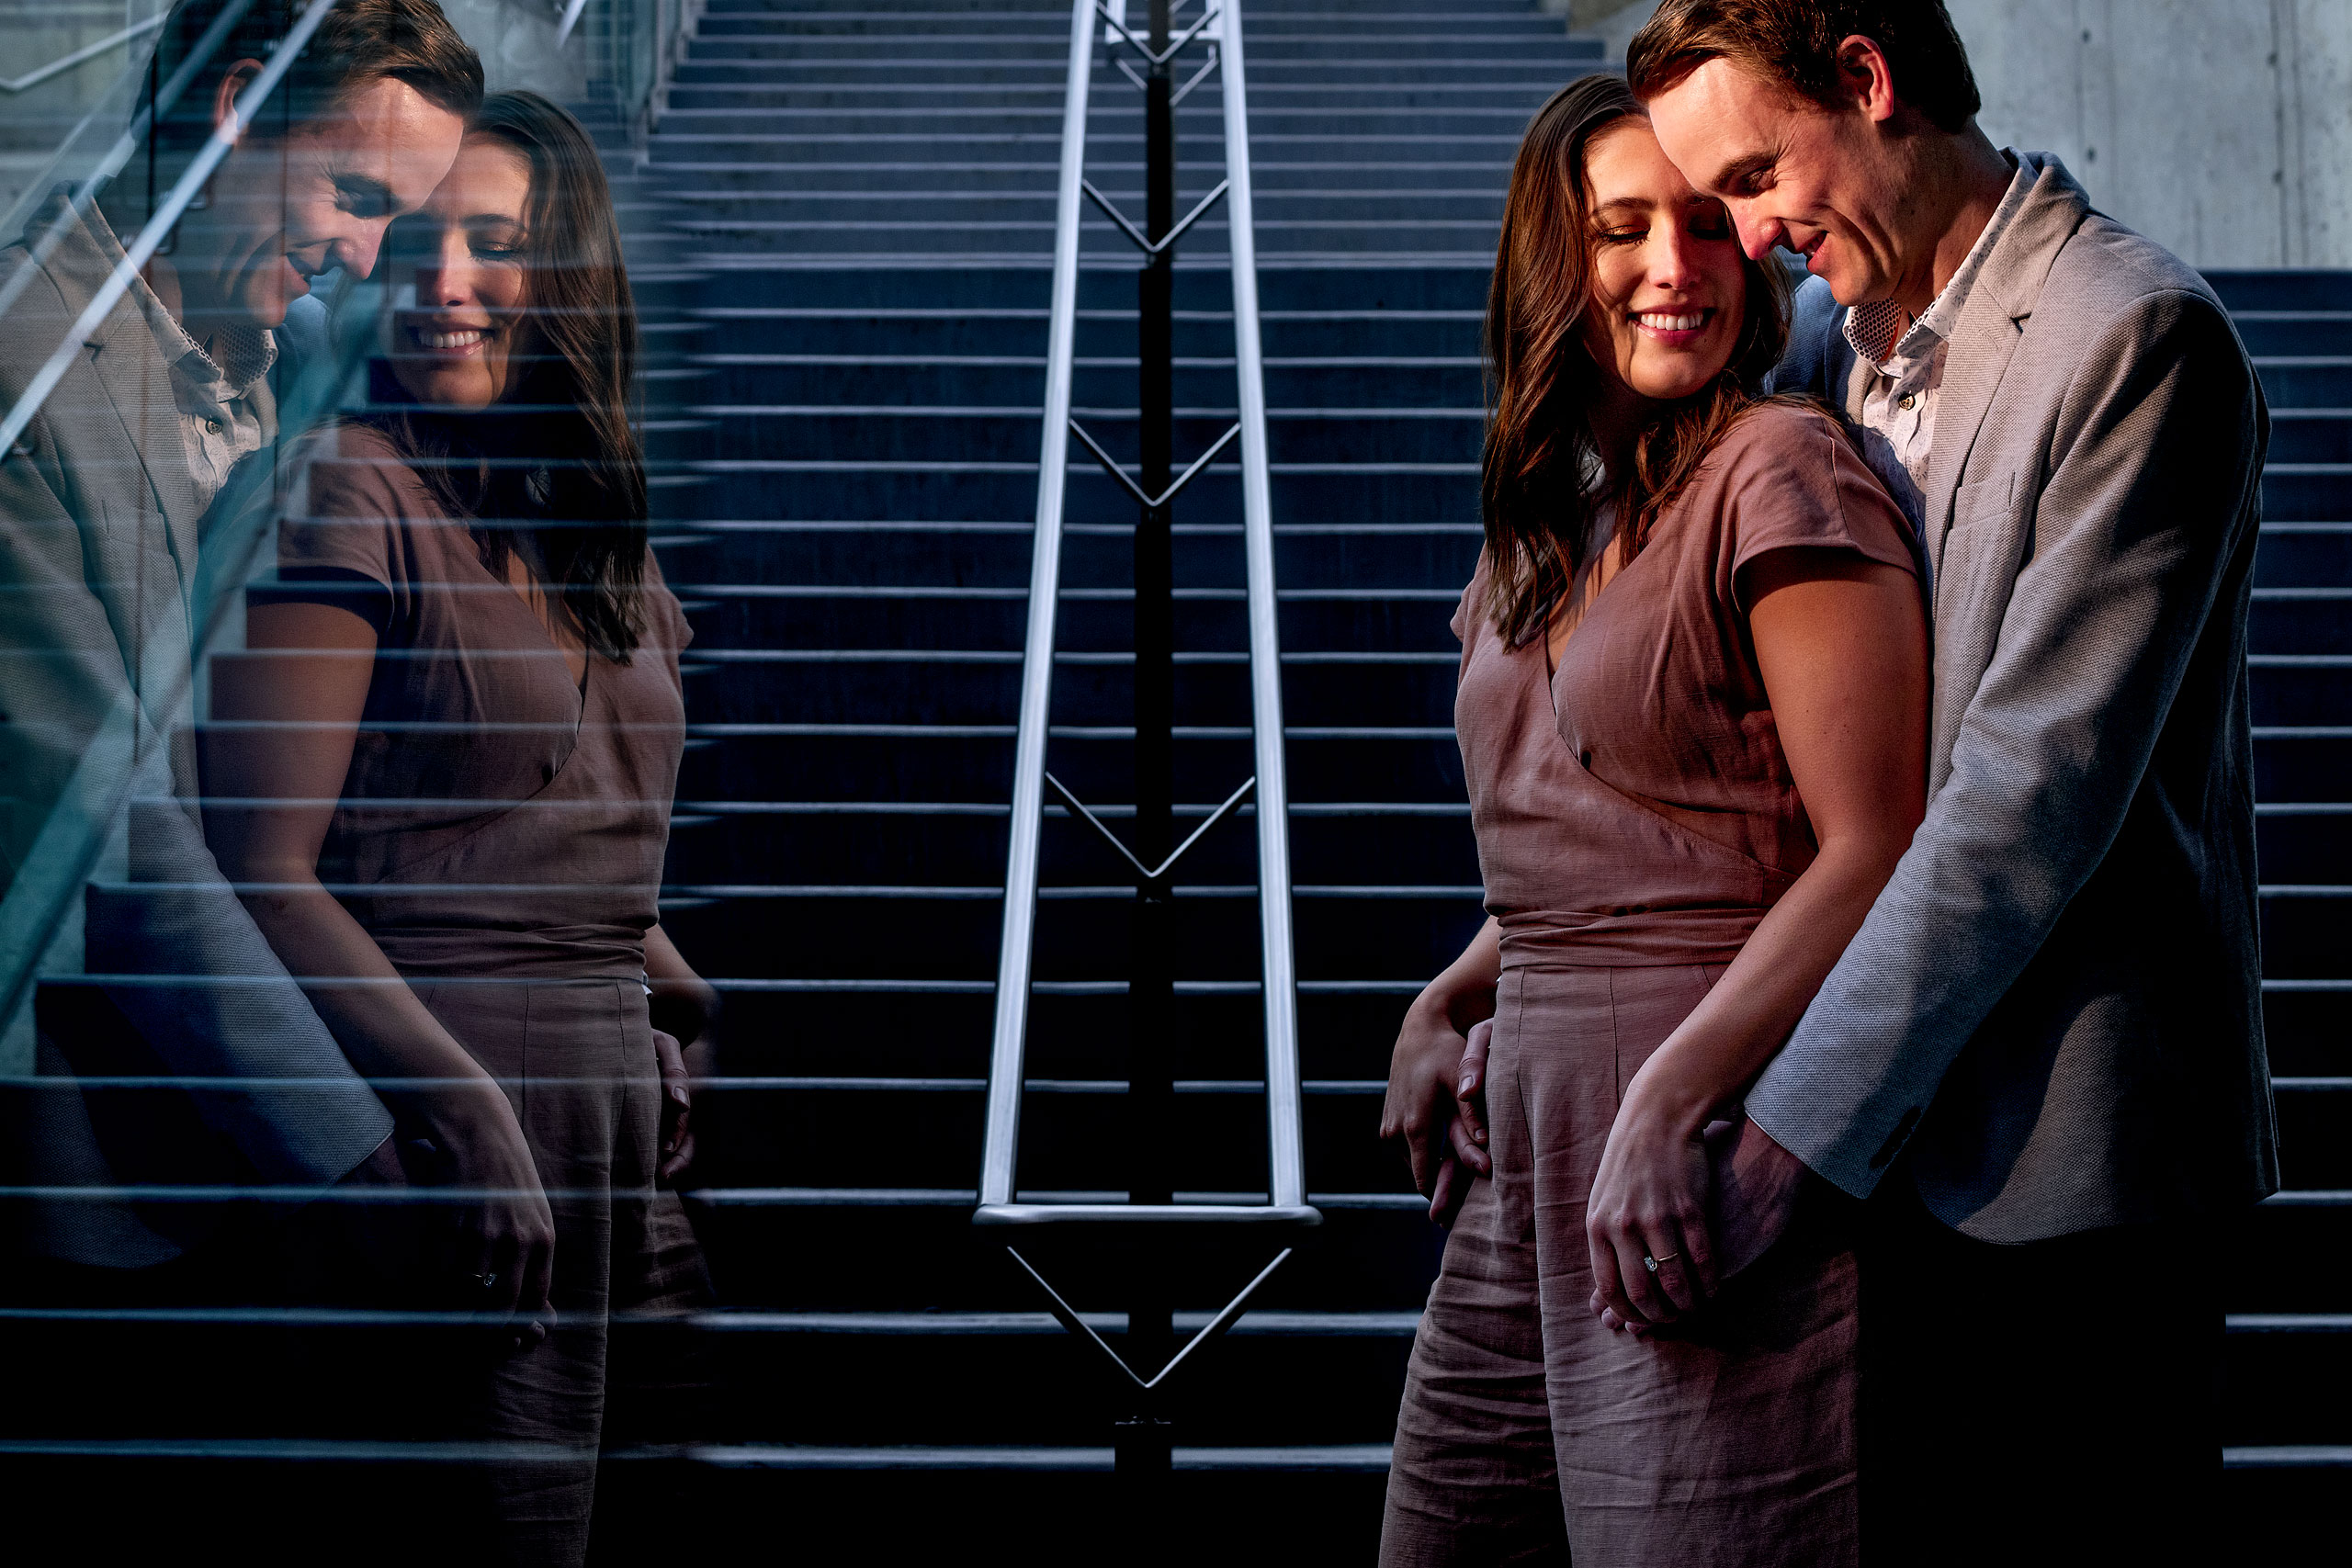 an engaged couple reflected in glass by calgary engagement photographer sean leblanc